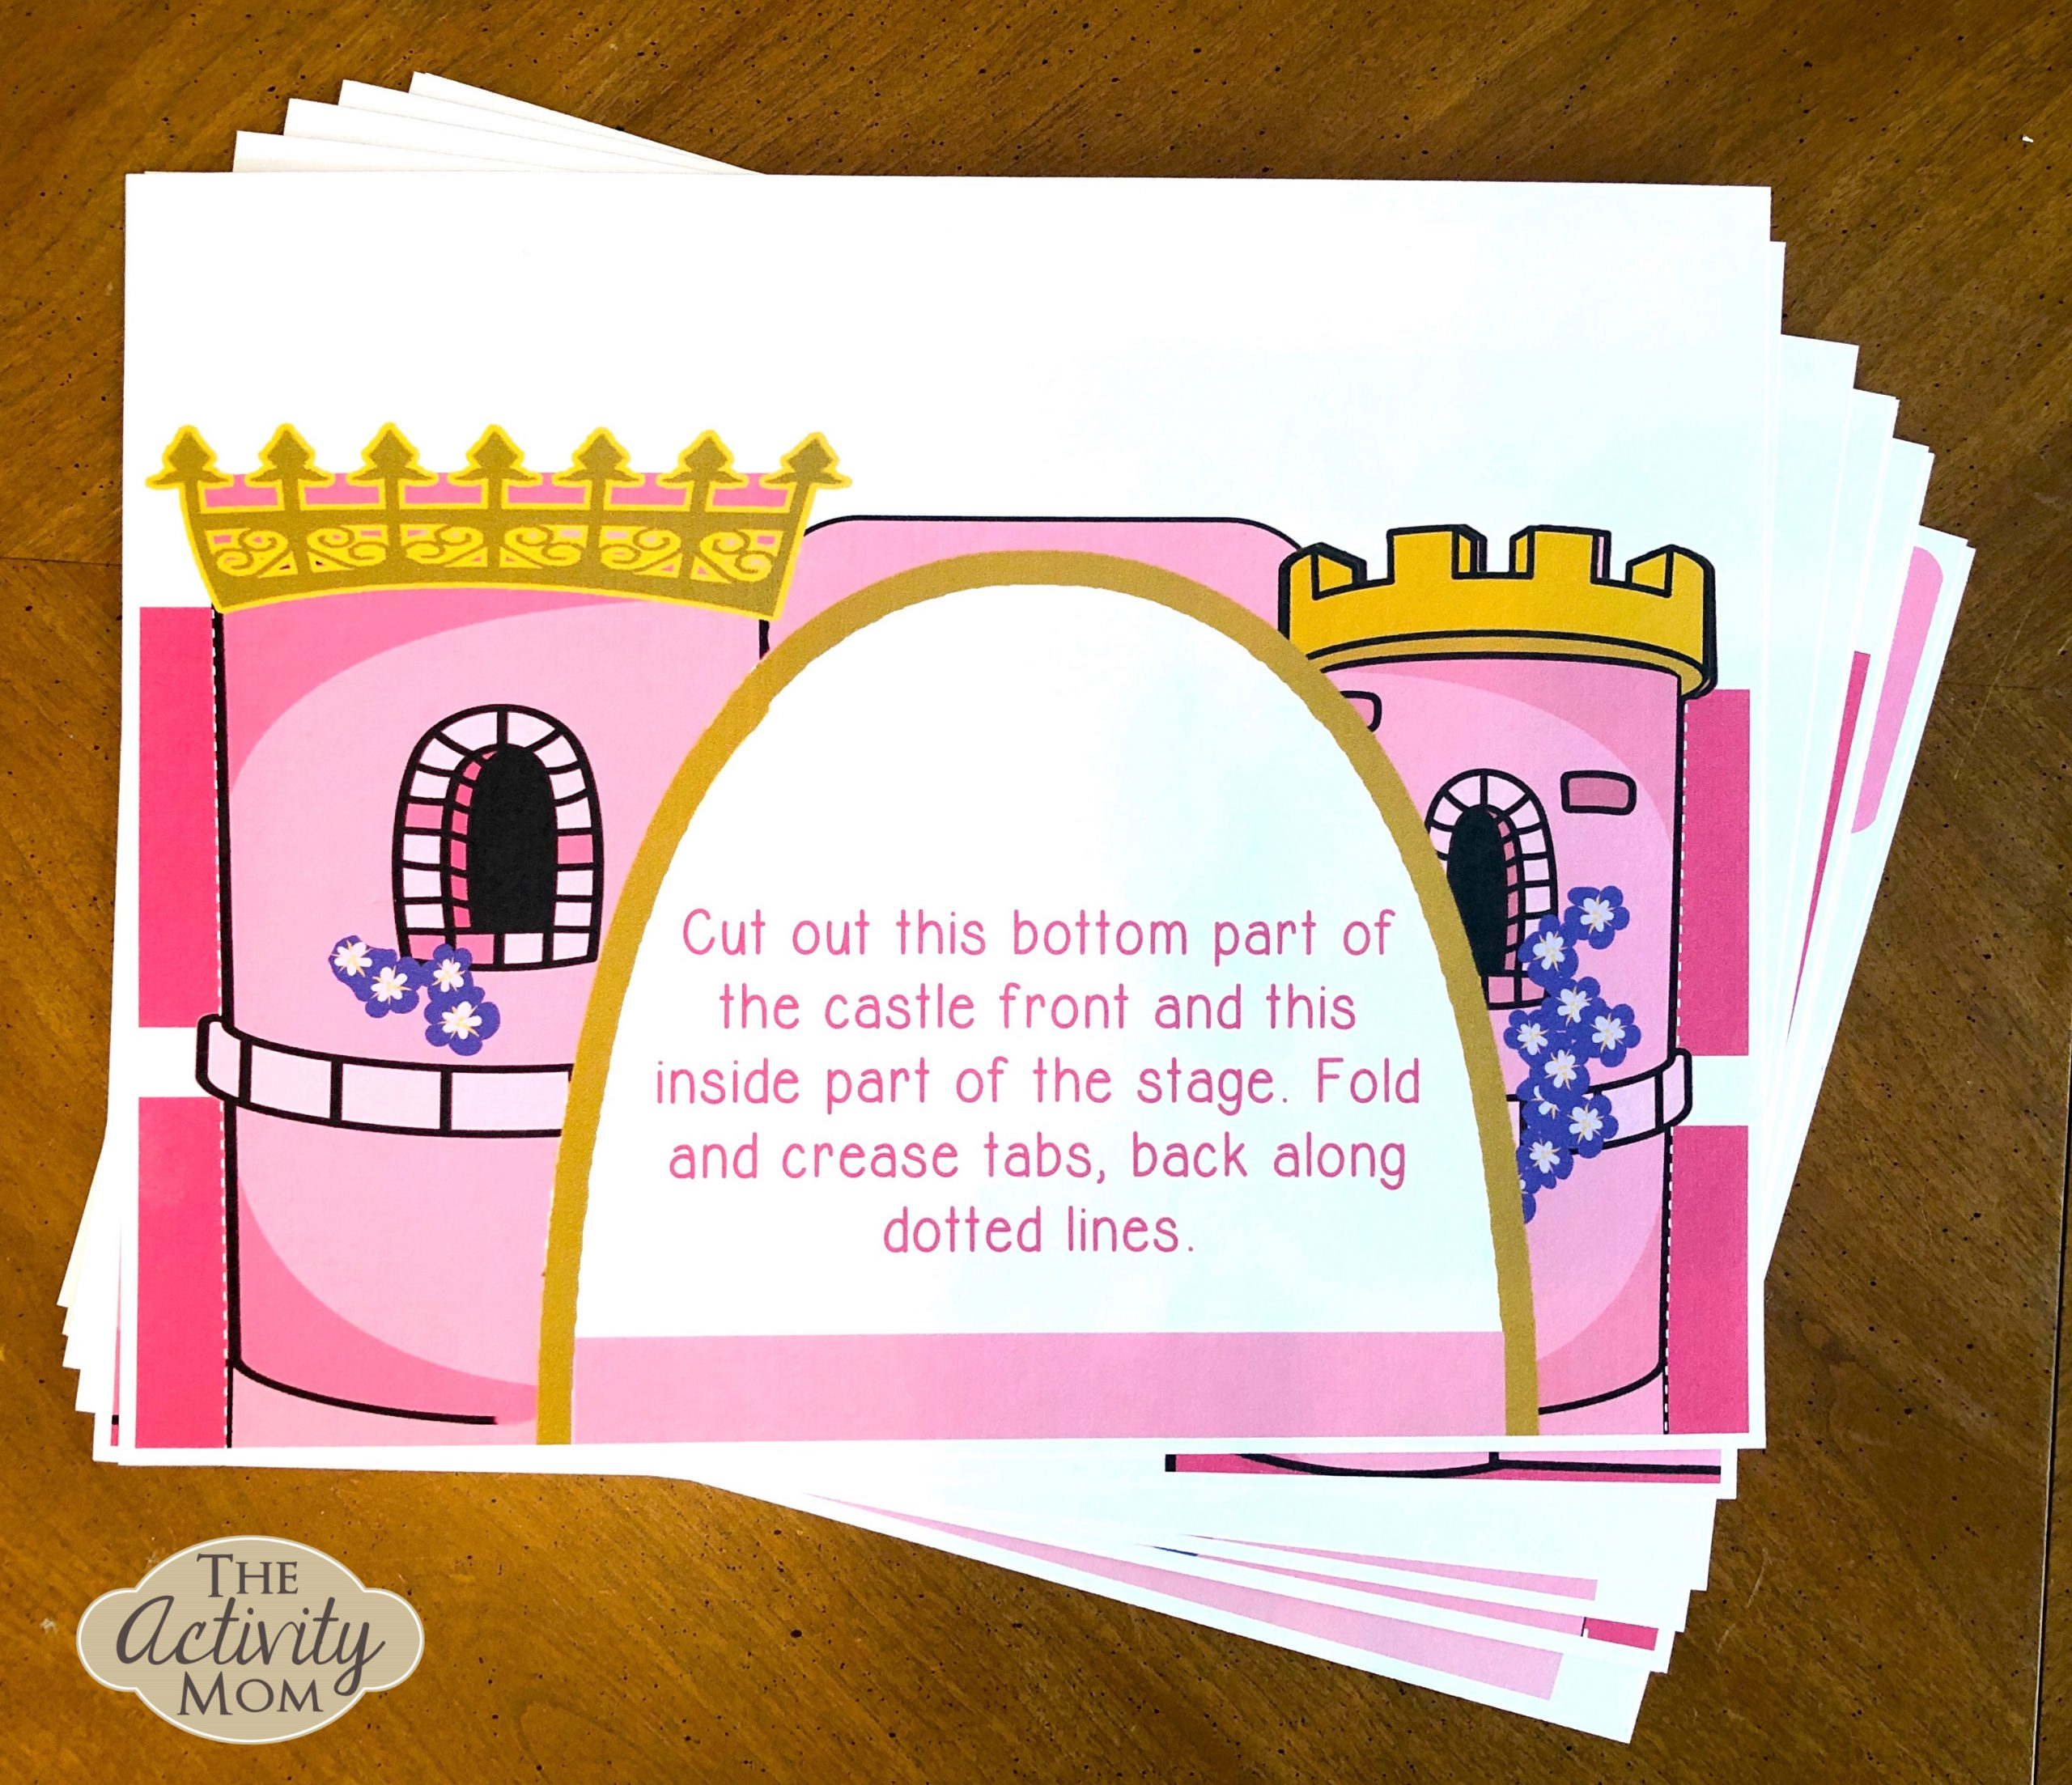 Step by Step Directions to Princess Puppet Theater